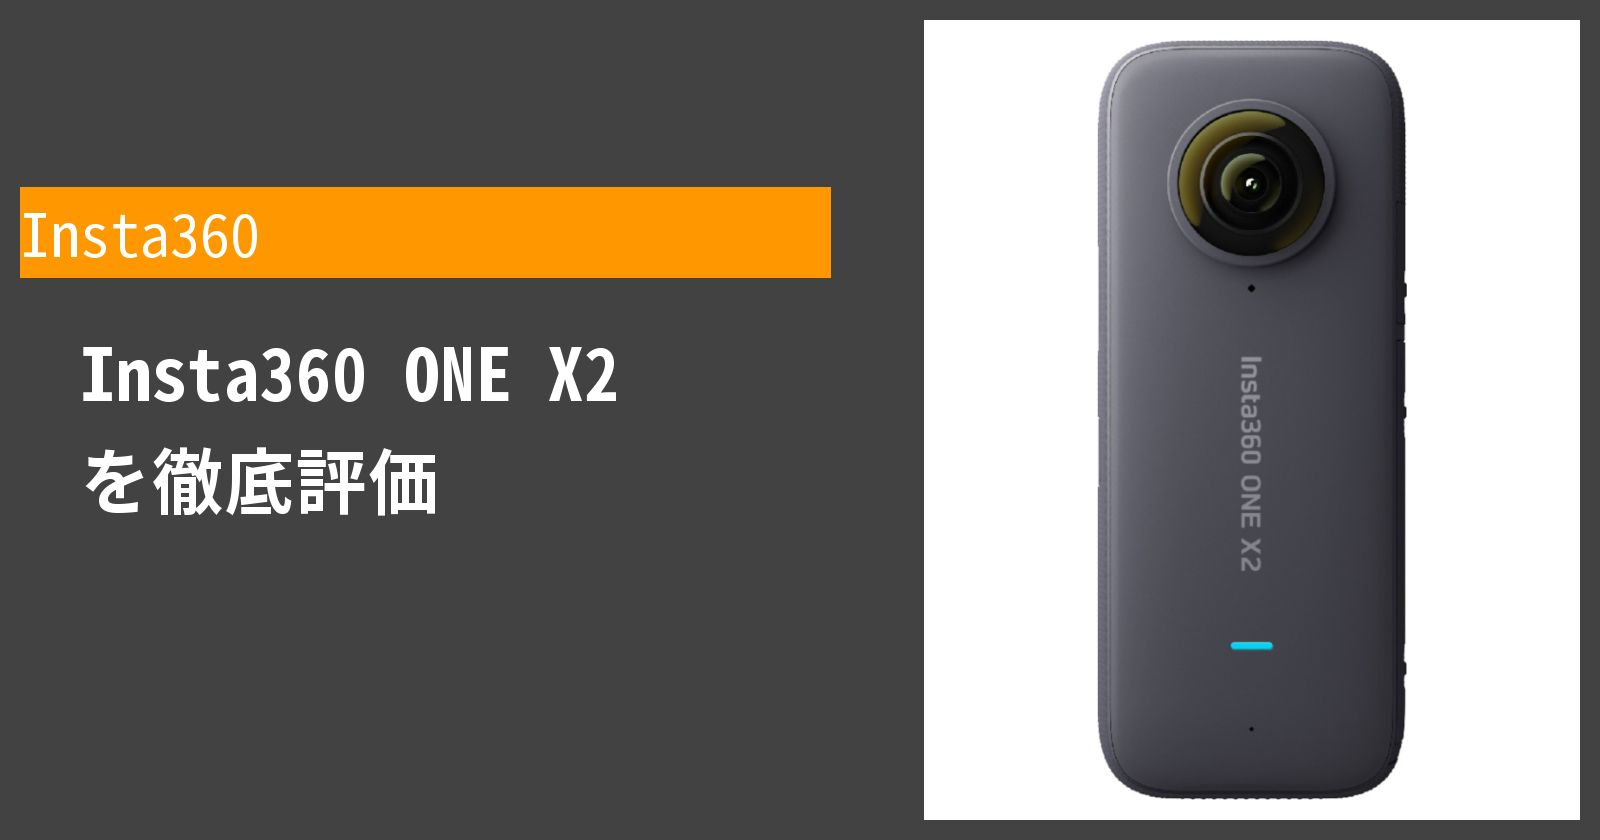 Insta360 ONE X2を徹底評価